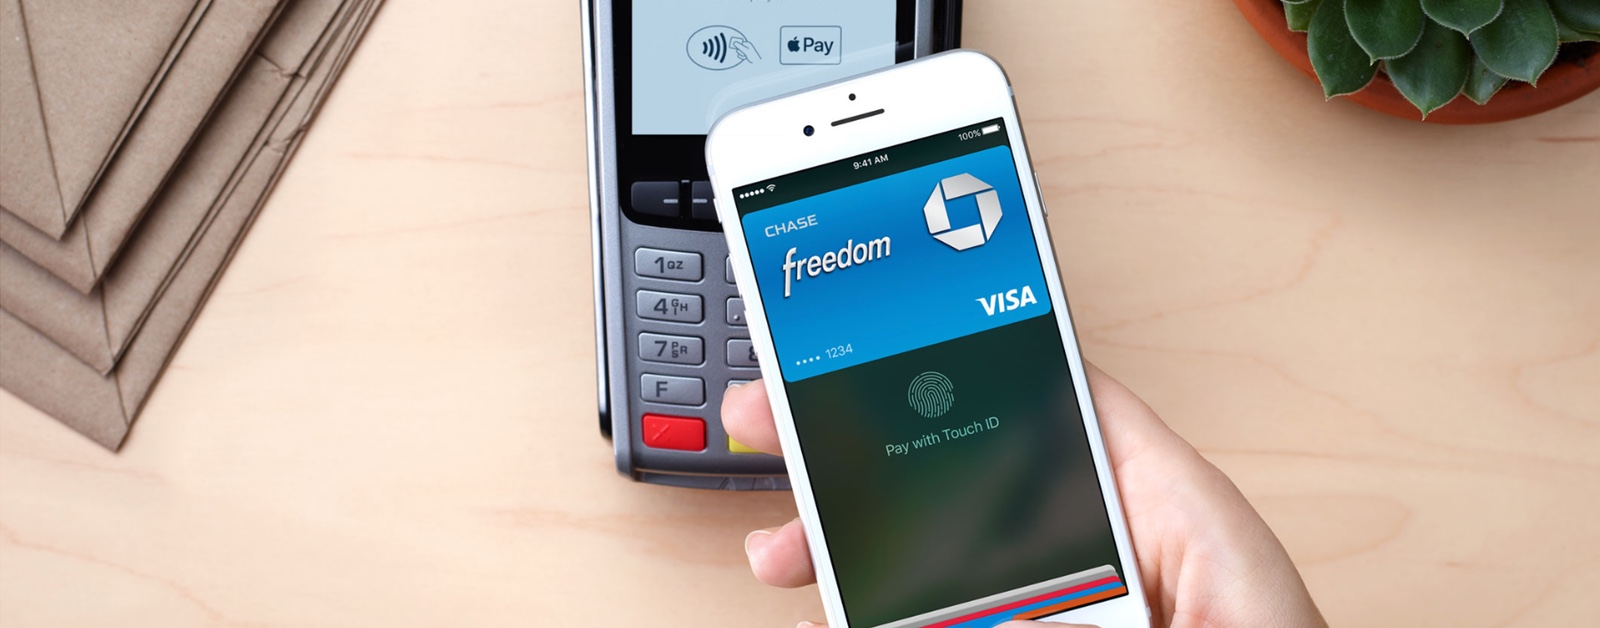 Apple Pay Makes Up Just 9% of U.S. Mobile Payments